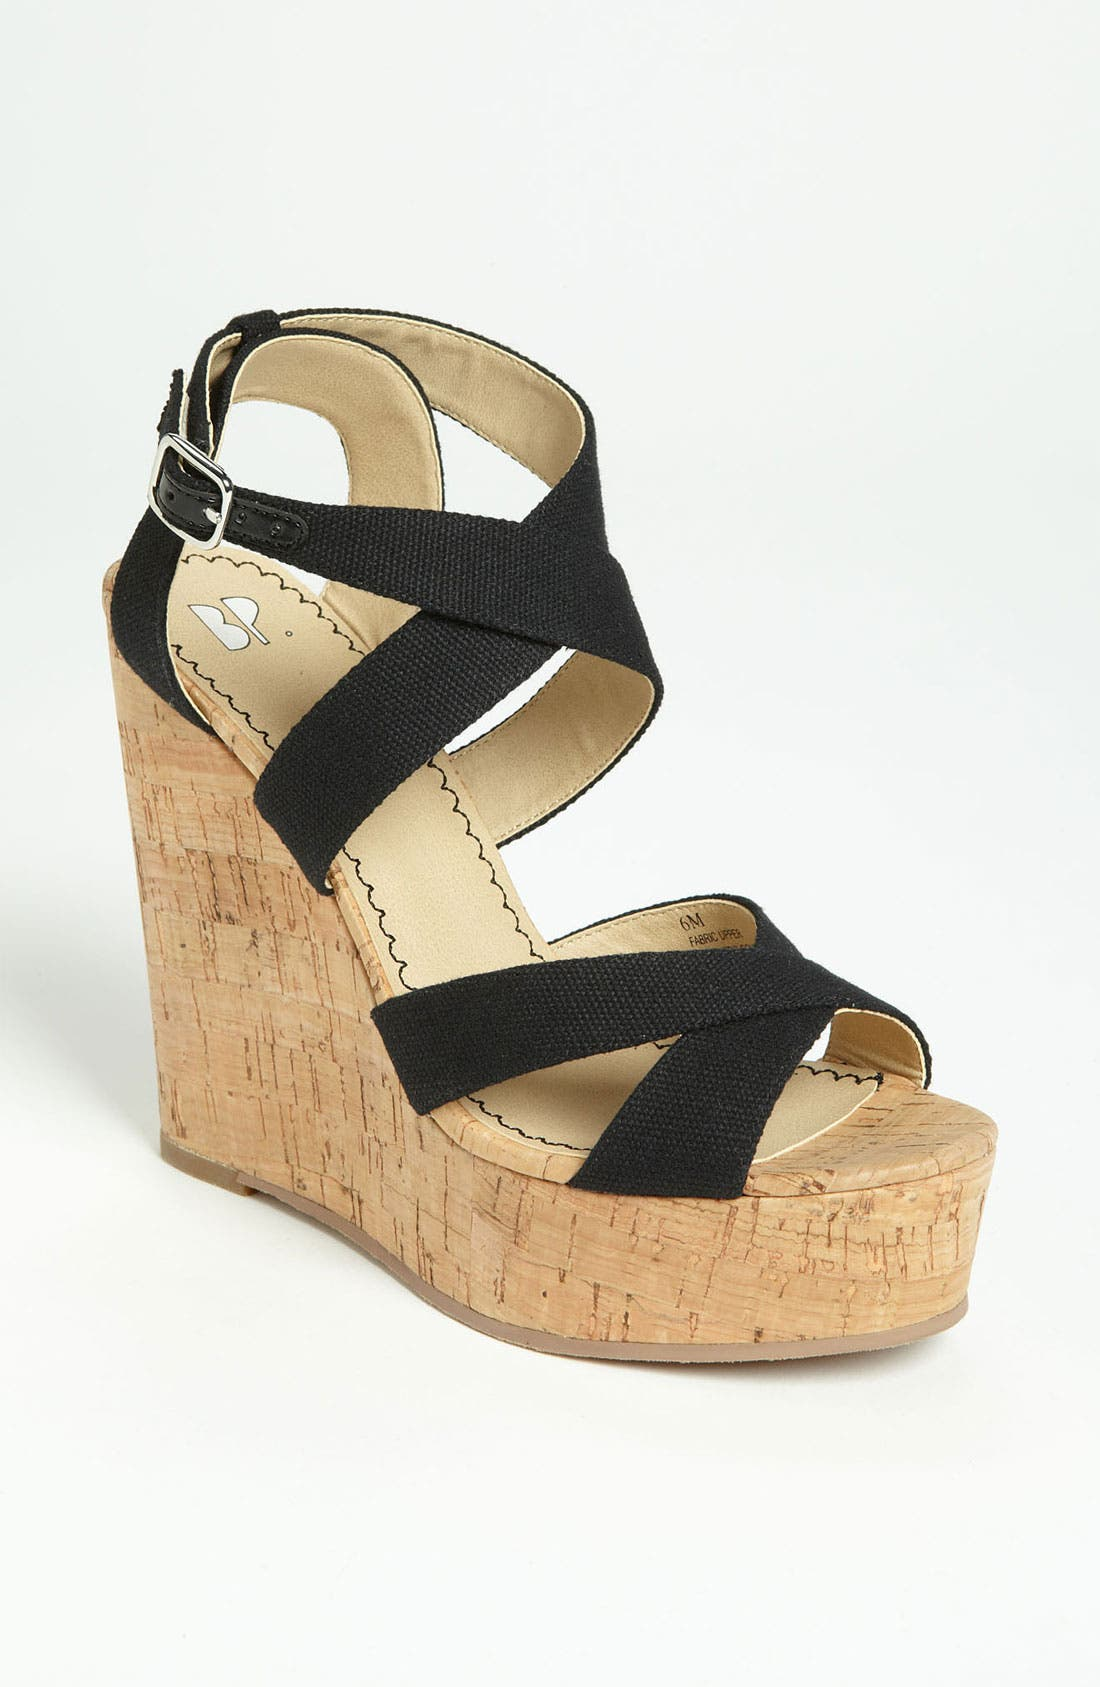 Alternate Image 1 Selected - BP. 'Erika' Wedge Sandal